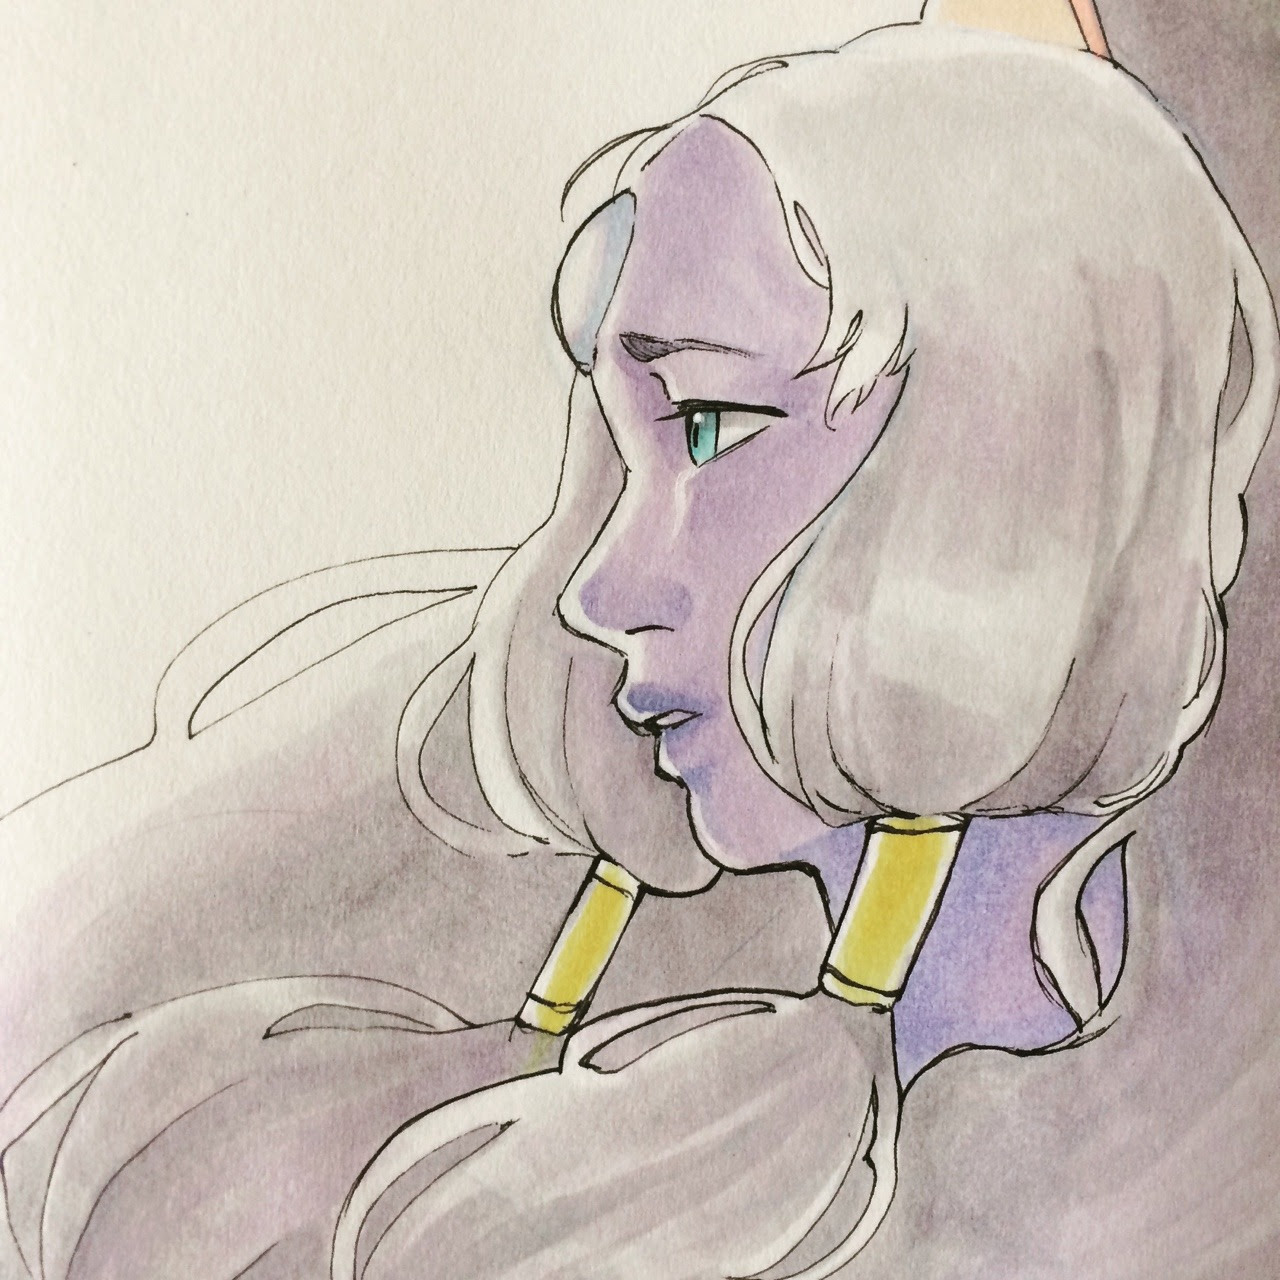 Hopal for Opal (seriously tho pls bring back my daughter)